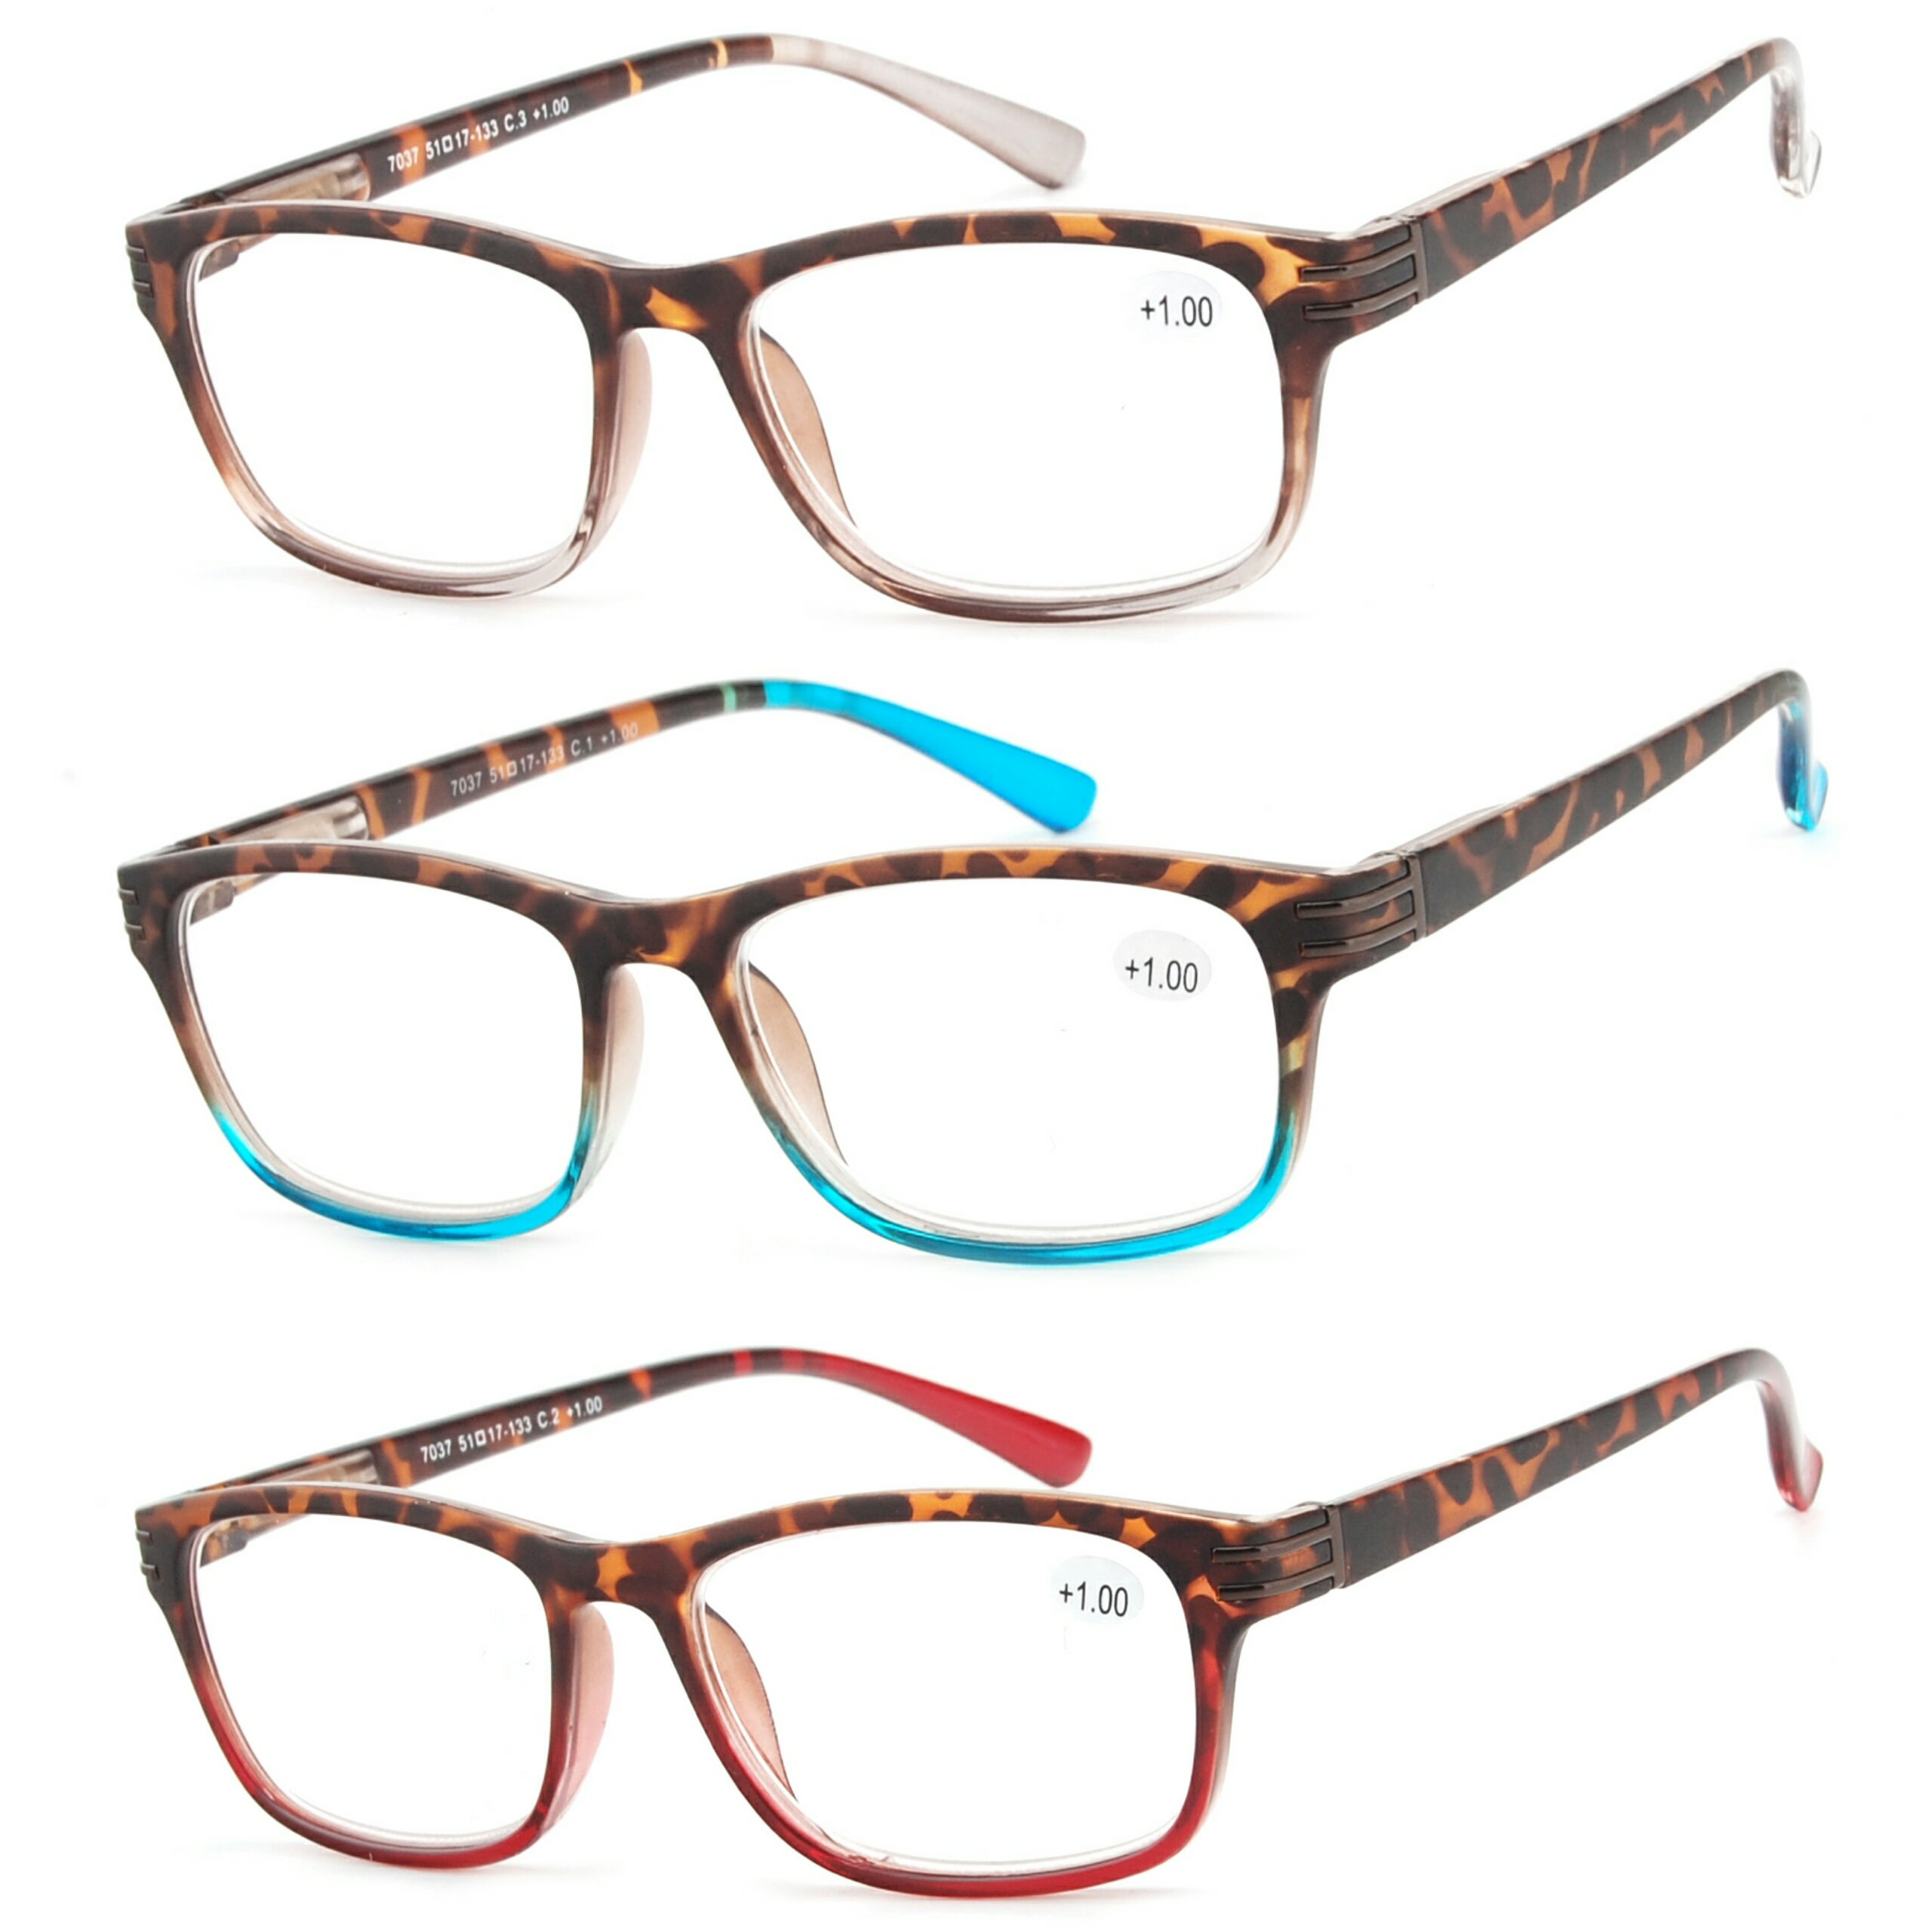 6560eccc0c Get Quotations · Reading Glasses 3 Pair Great Value Stylish Readers Fashion  Men and Women Glasses for Reading